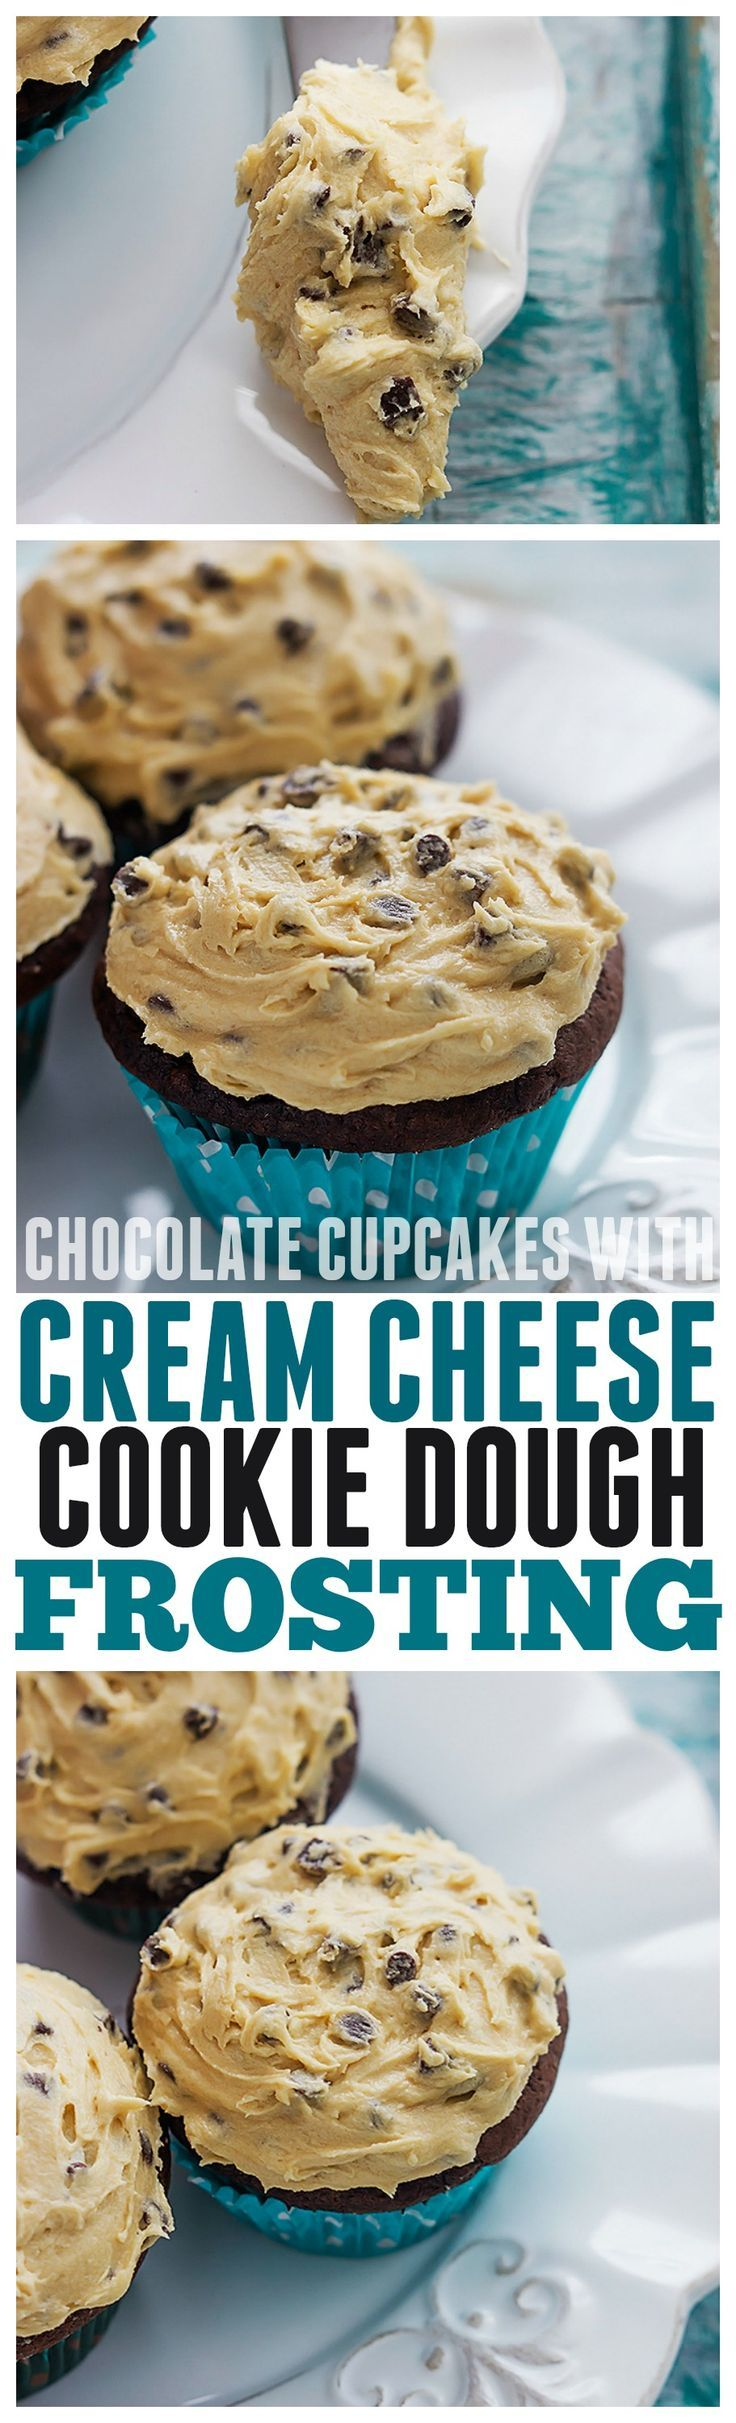 Perfect Chocolate Chip Cupcakes with the absolute BEST Cream Cheese Cookie Dough Frosting!!!